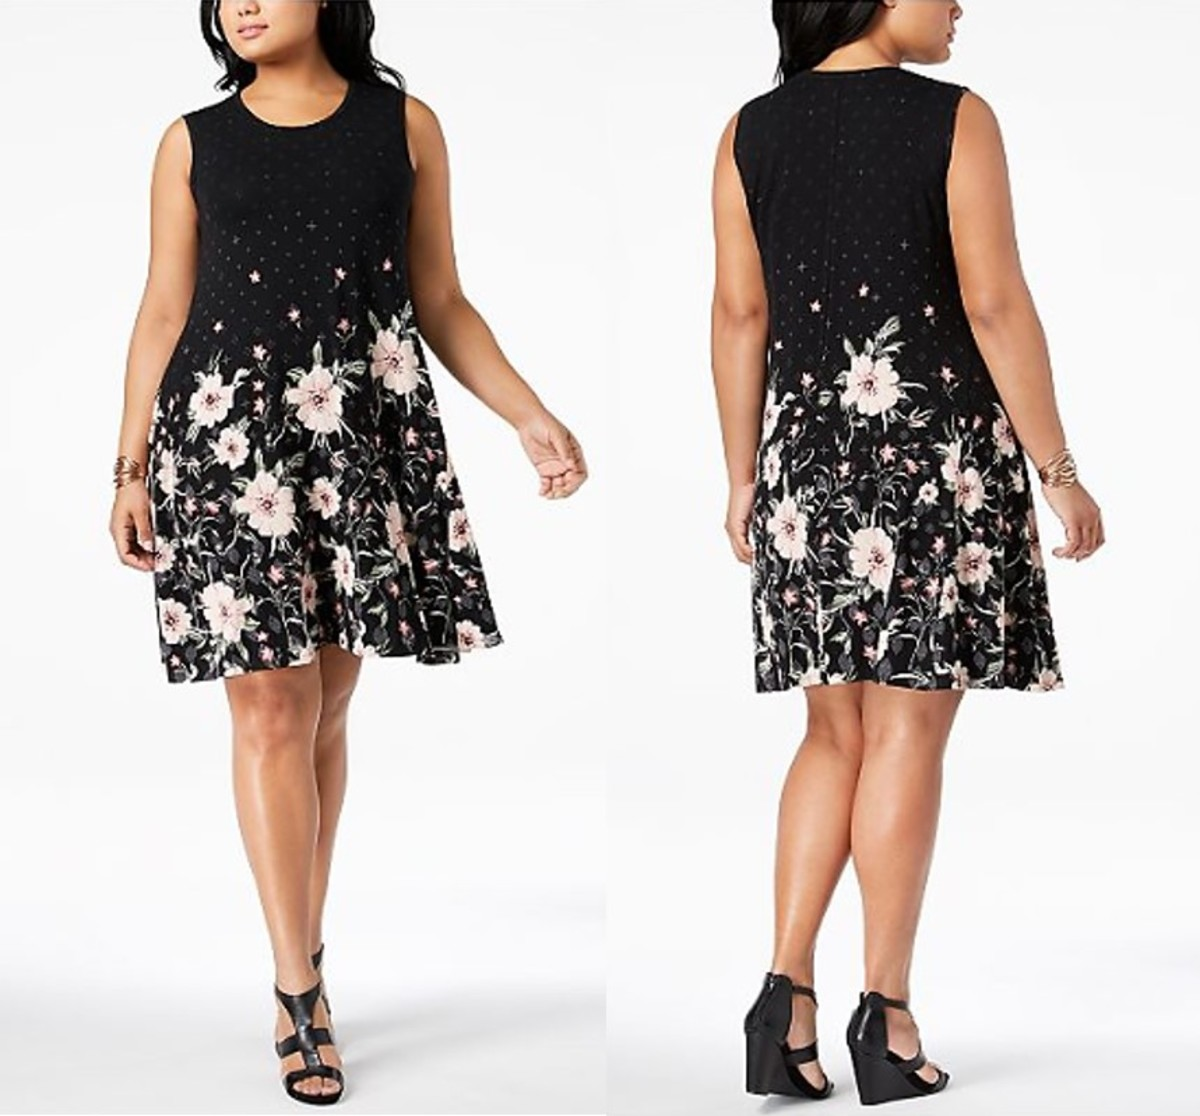 A-line swing dress with floral placement print